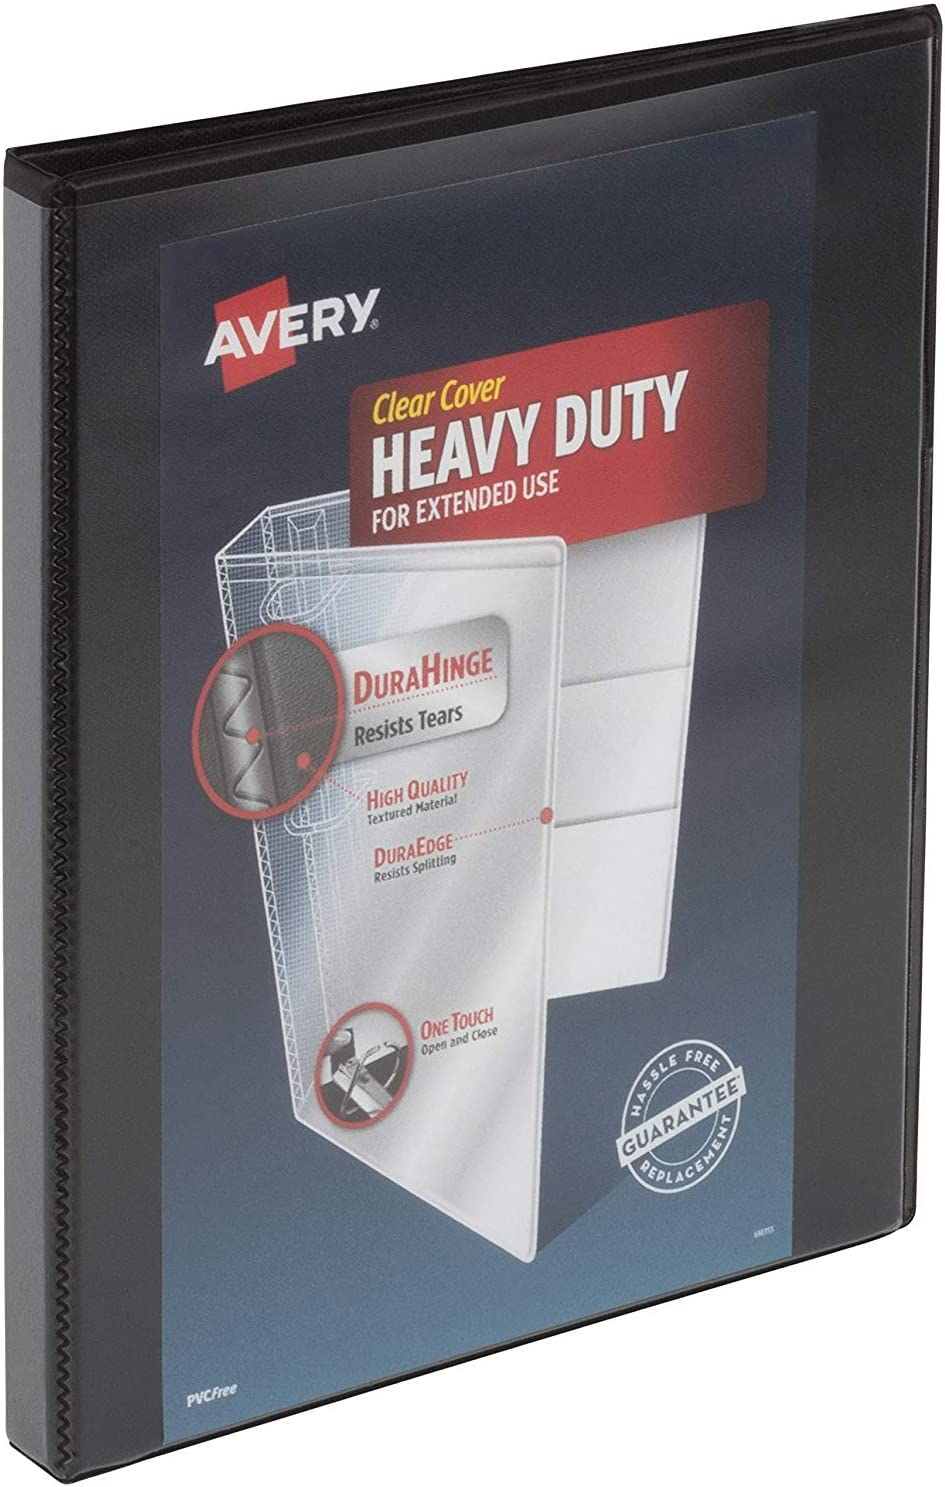 """Avery 1/2 inch Heavy Duty View 3 Ring Binder, One Touch Slant Ring, Holds 8.5"""" x 11"""" Paper, 1 Black Binder (79381) [並行輸入品]"""